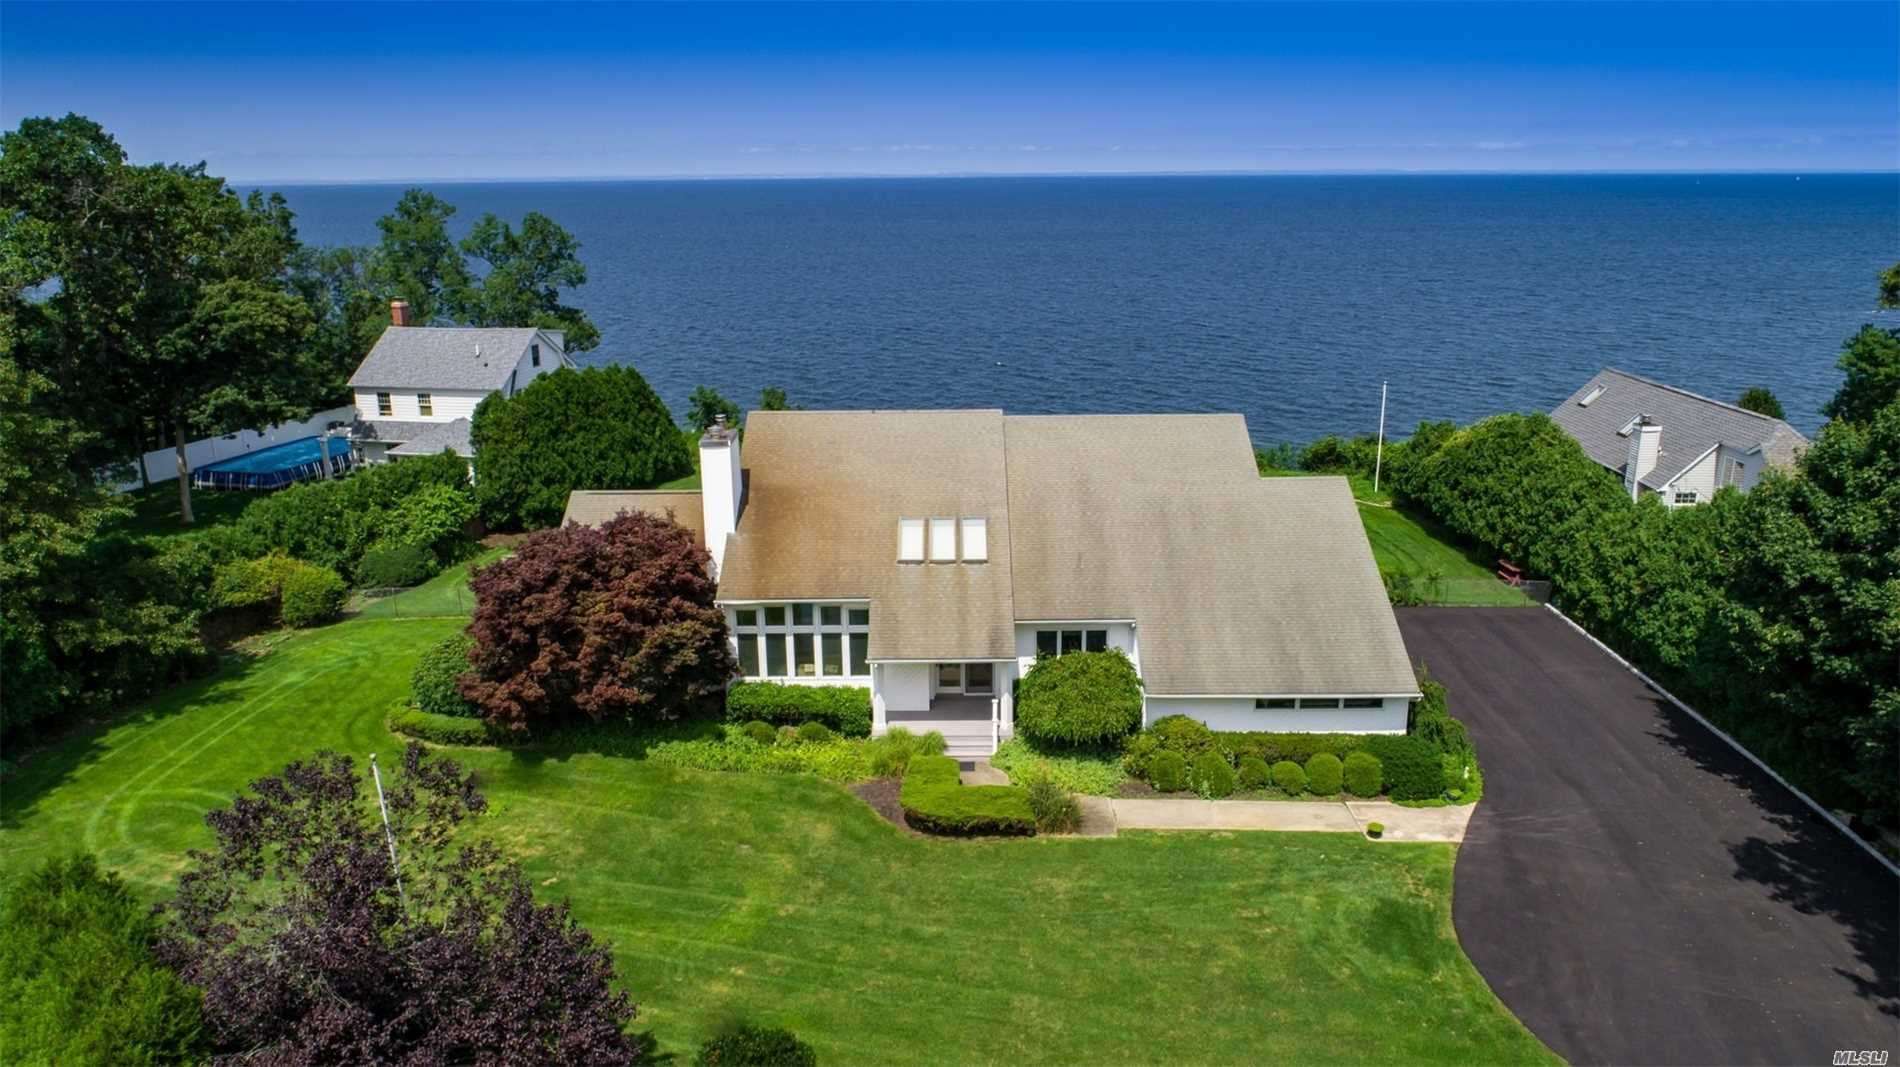 Magnificent Water Front Location W/Breathtaking Views Of The Li Sound. New Pvt Drwy Leading To This Summer Retreat Or Yr Round Paradise. Spectacular Water Views From Every Room W/Oversized Windows/Doors, 1st Fl Mst Ste, Open Fl Plan, Main Fl Laundry, Full Bsmnt, Ose, Take In The Unforgettable Sunsets From The Viewing Deck Or Ig Pool. , Updtd Heat, Cac, New Drwy, Pool Pump, Dishwasher, Micro. Propane Cooking & Fireplace.  Close To Beaches, Farms, Wineries, Shopping, Restaurants. Virtual Tour